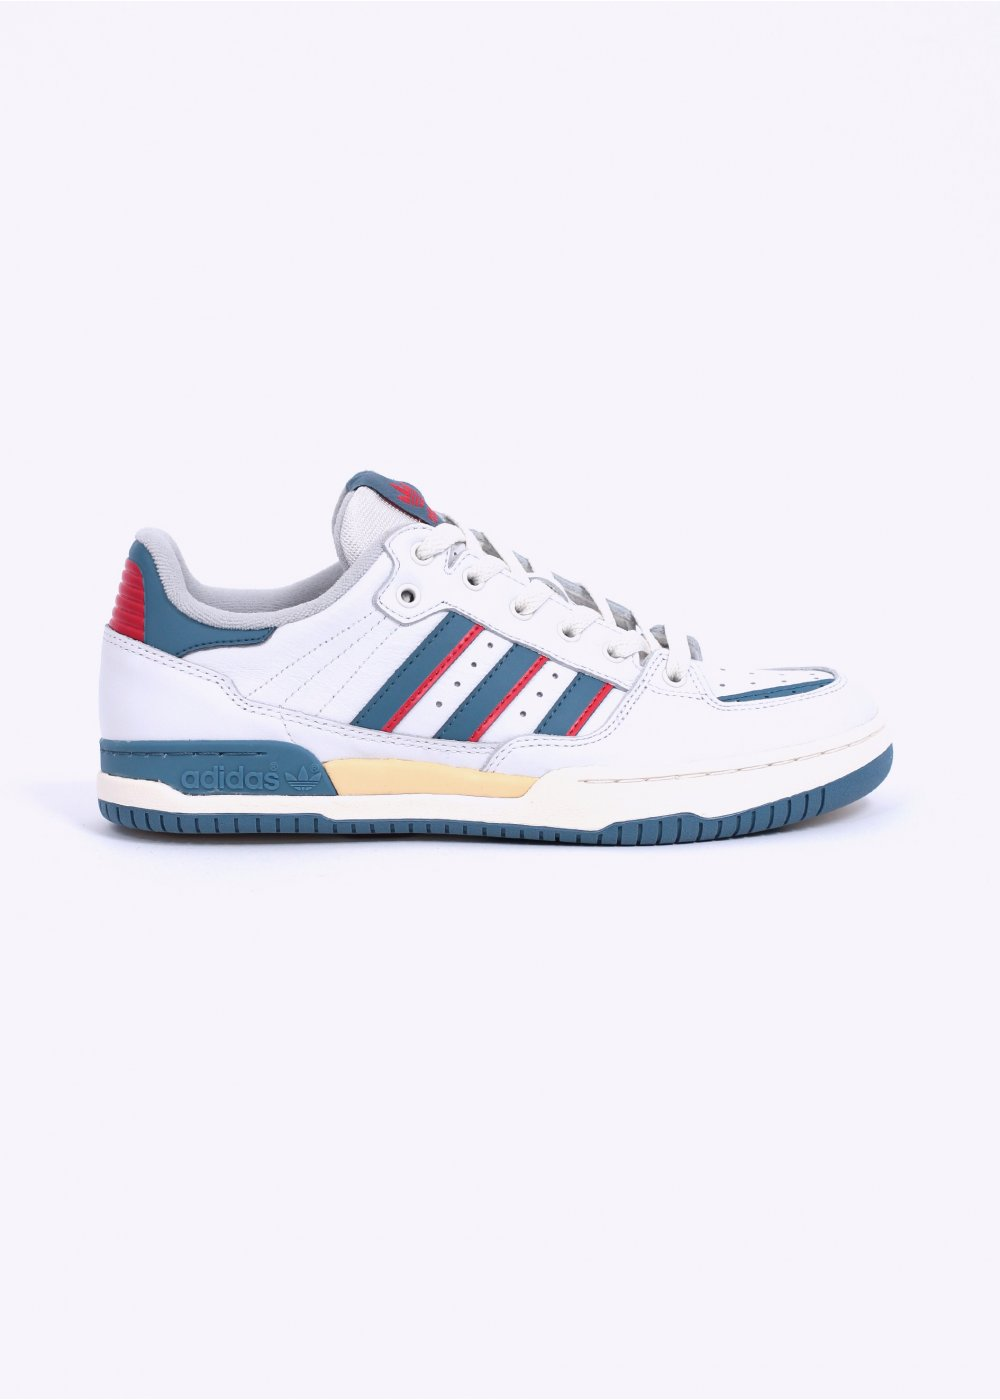 Adidas Ivan Lendl | relax with clothes | Adidas shoes